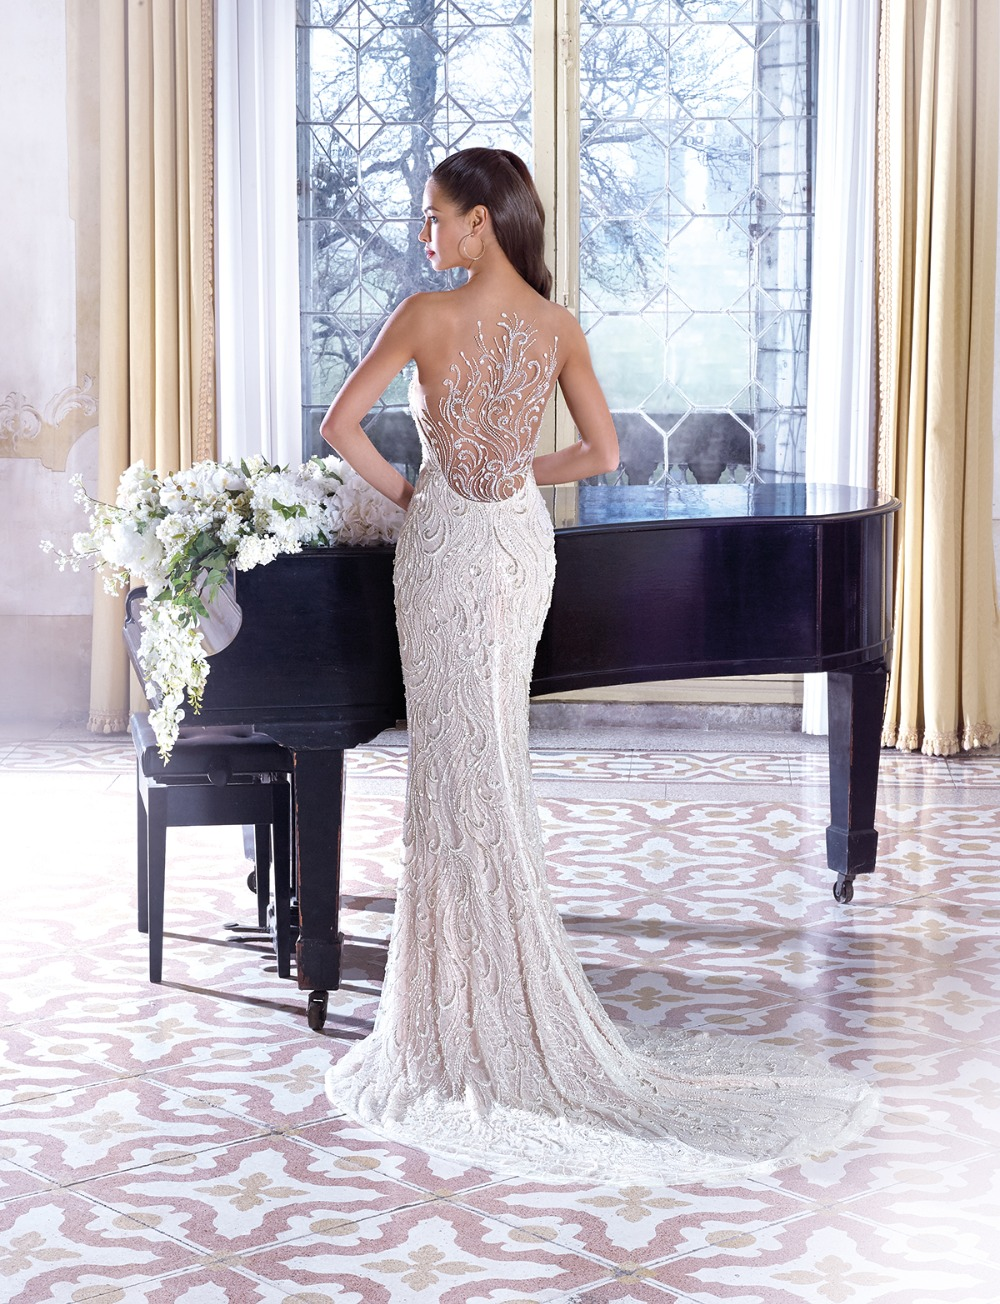 winter wonderland gown by Demetrios Platinum 19